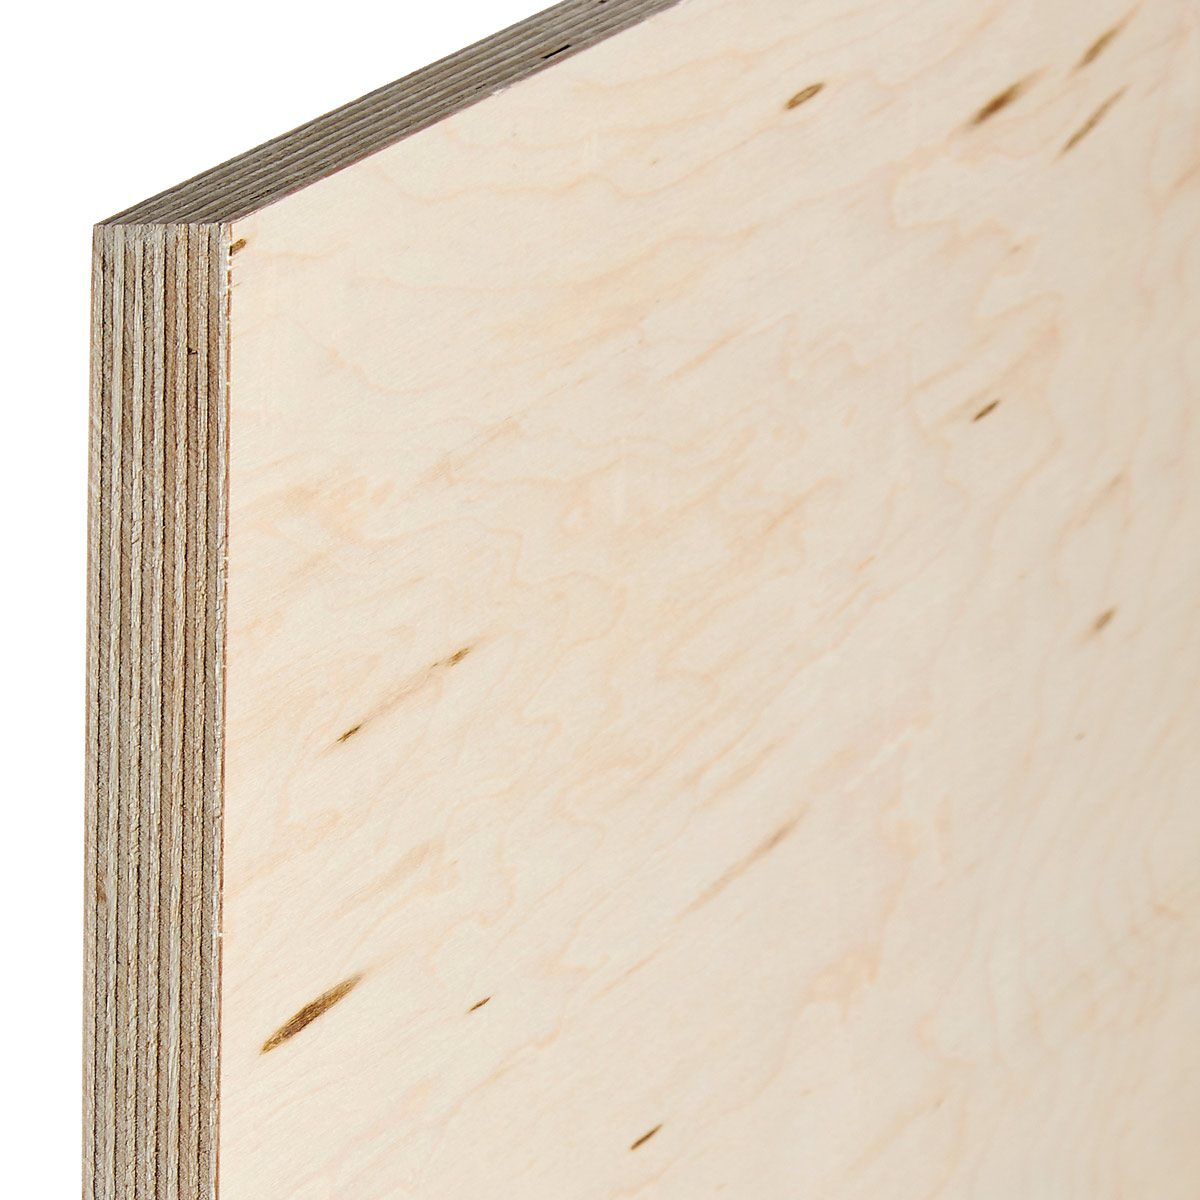 baltic birch and applyply core plywood